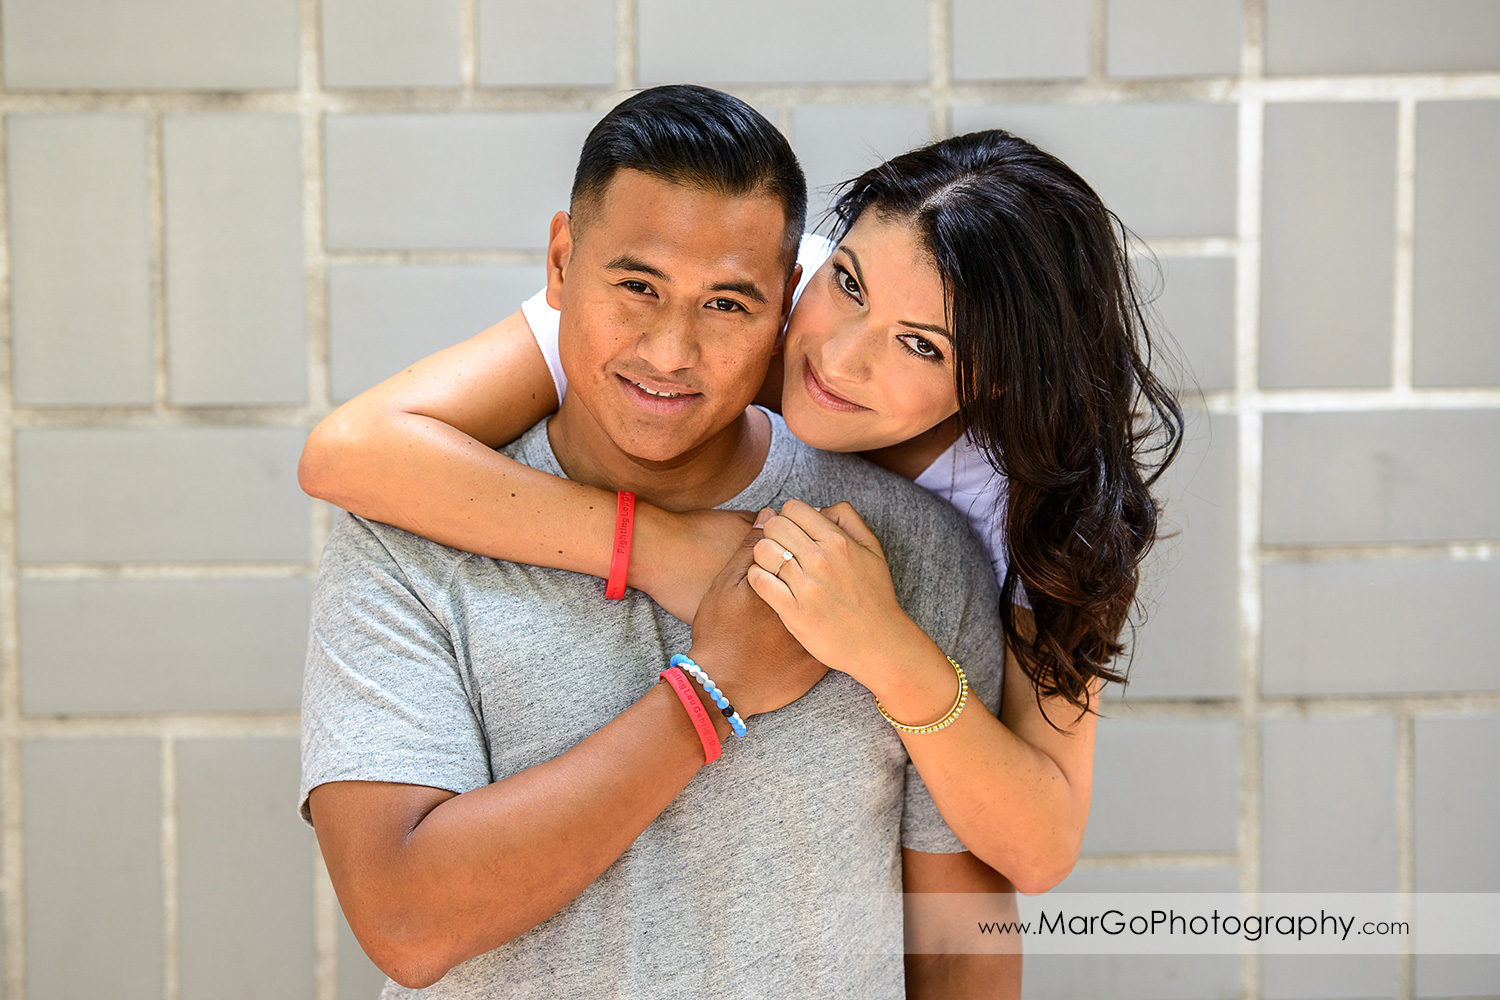 portrait of woman in white blouse hugging man in grey T-shirt on the grey wall looking into camera during engagement session at San Pedro Square Market in San Jose